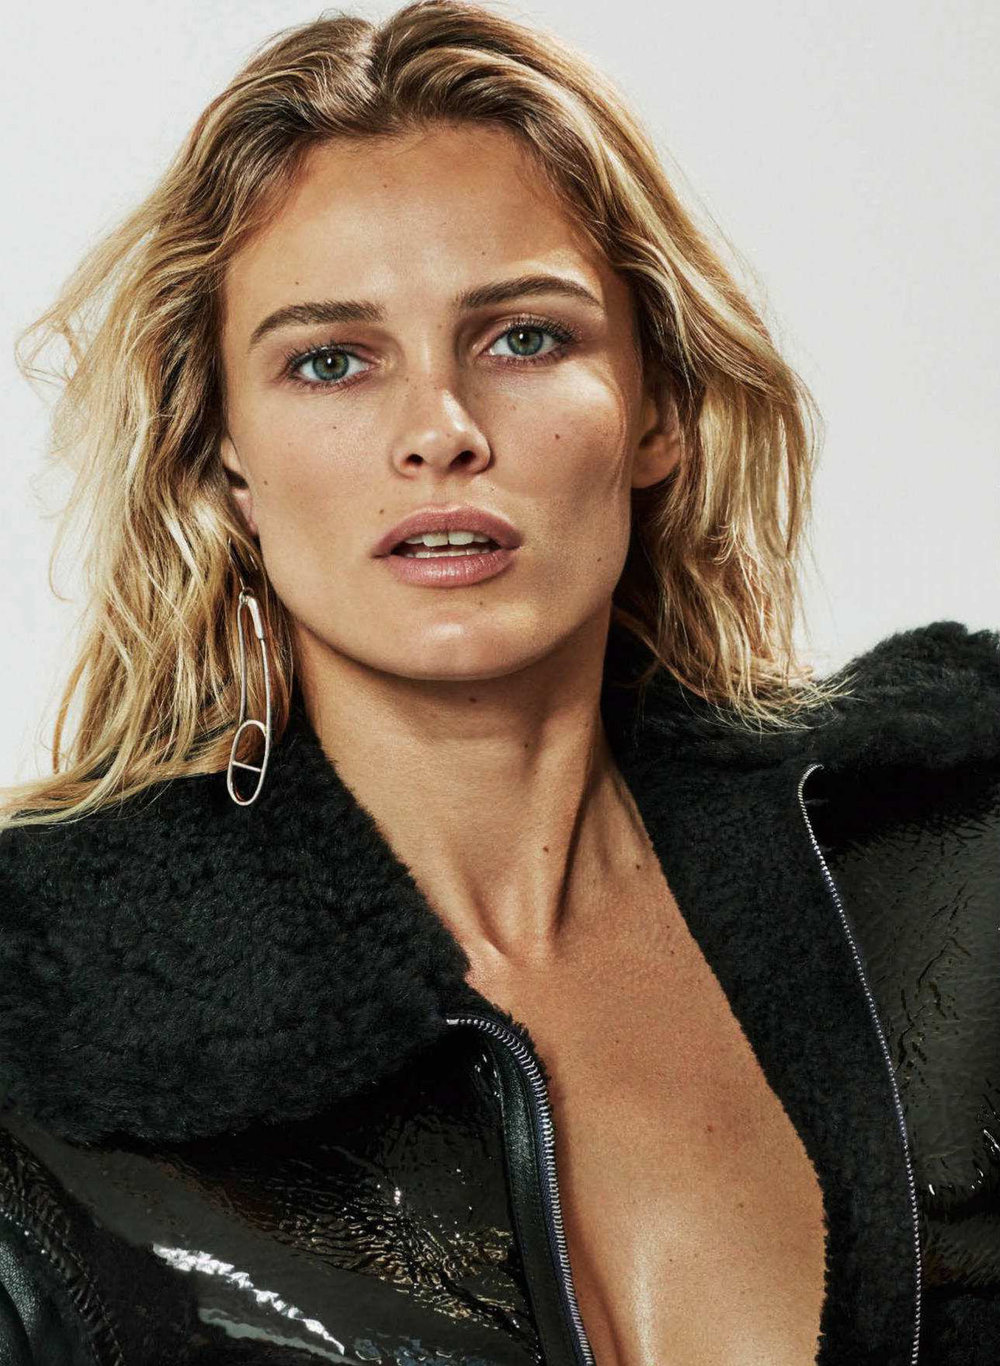 Photos Edita Vilkeviciute nude photos 2019